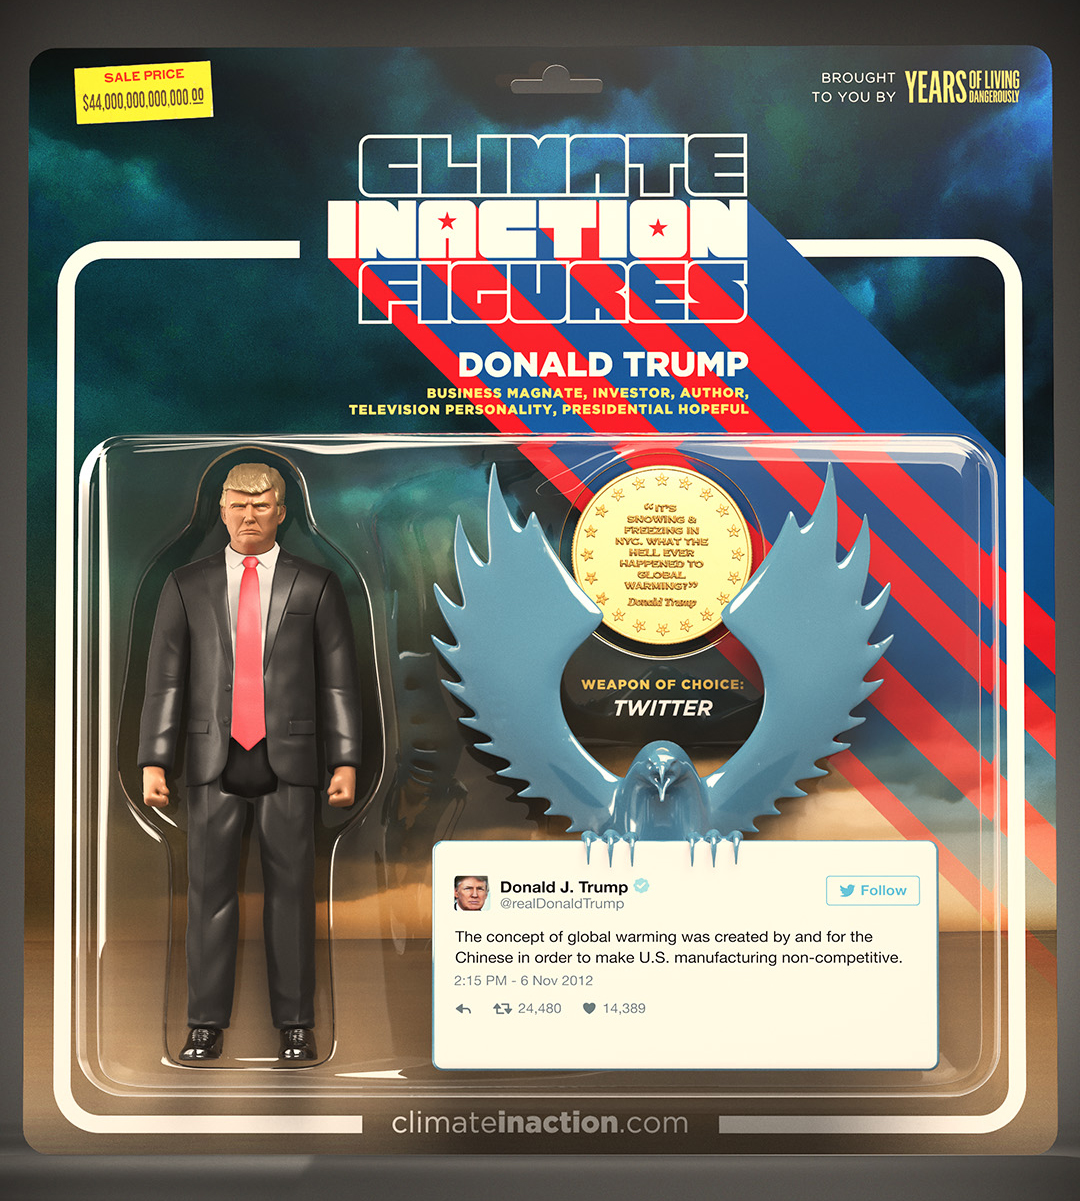 climate inaction figures donald trump